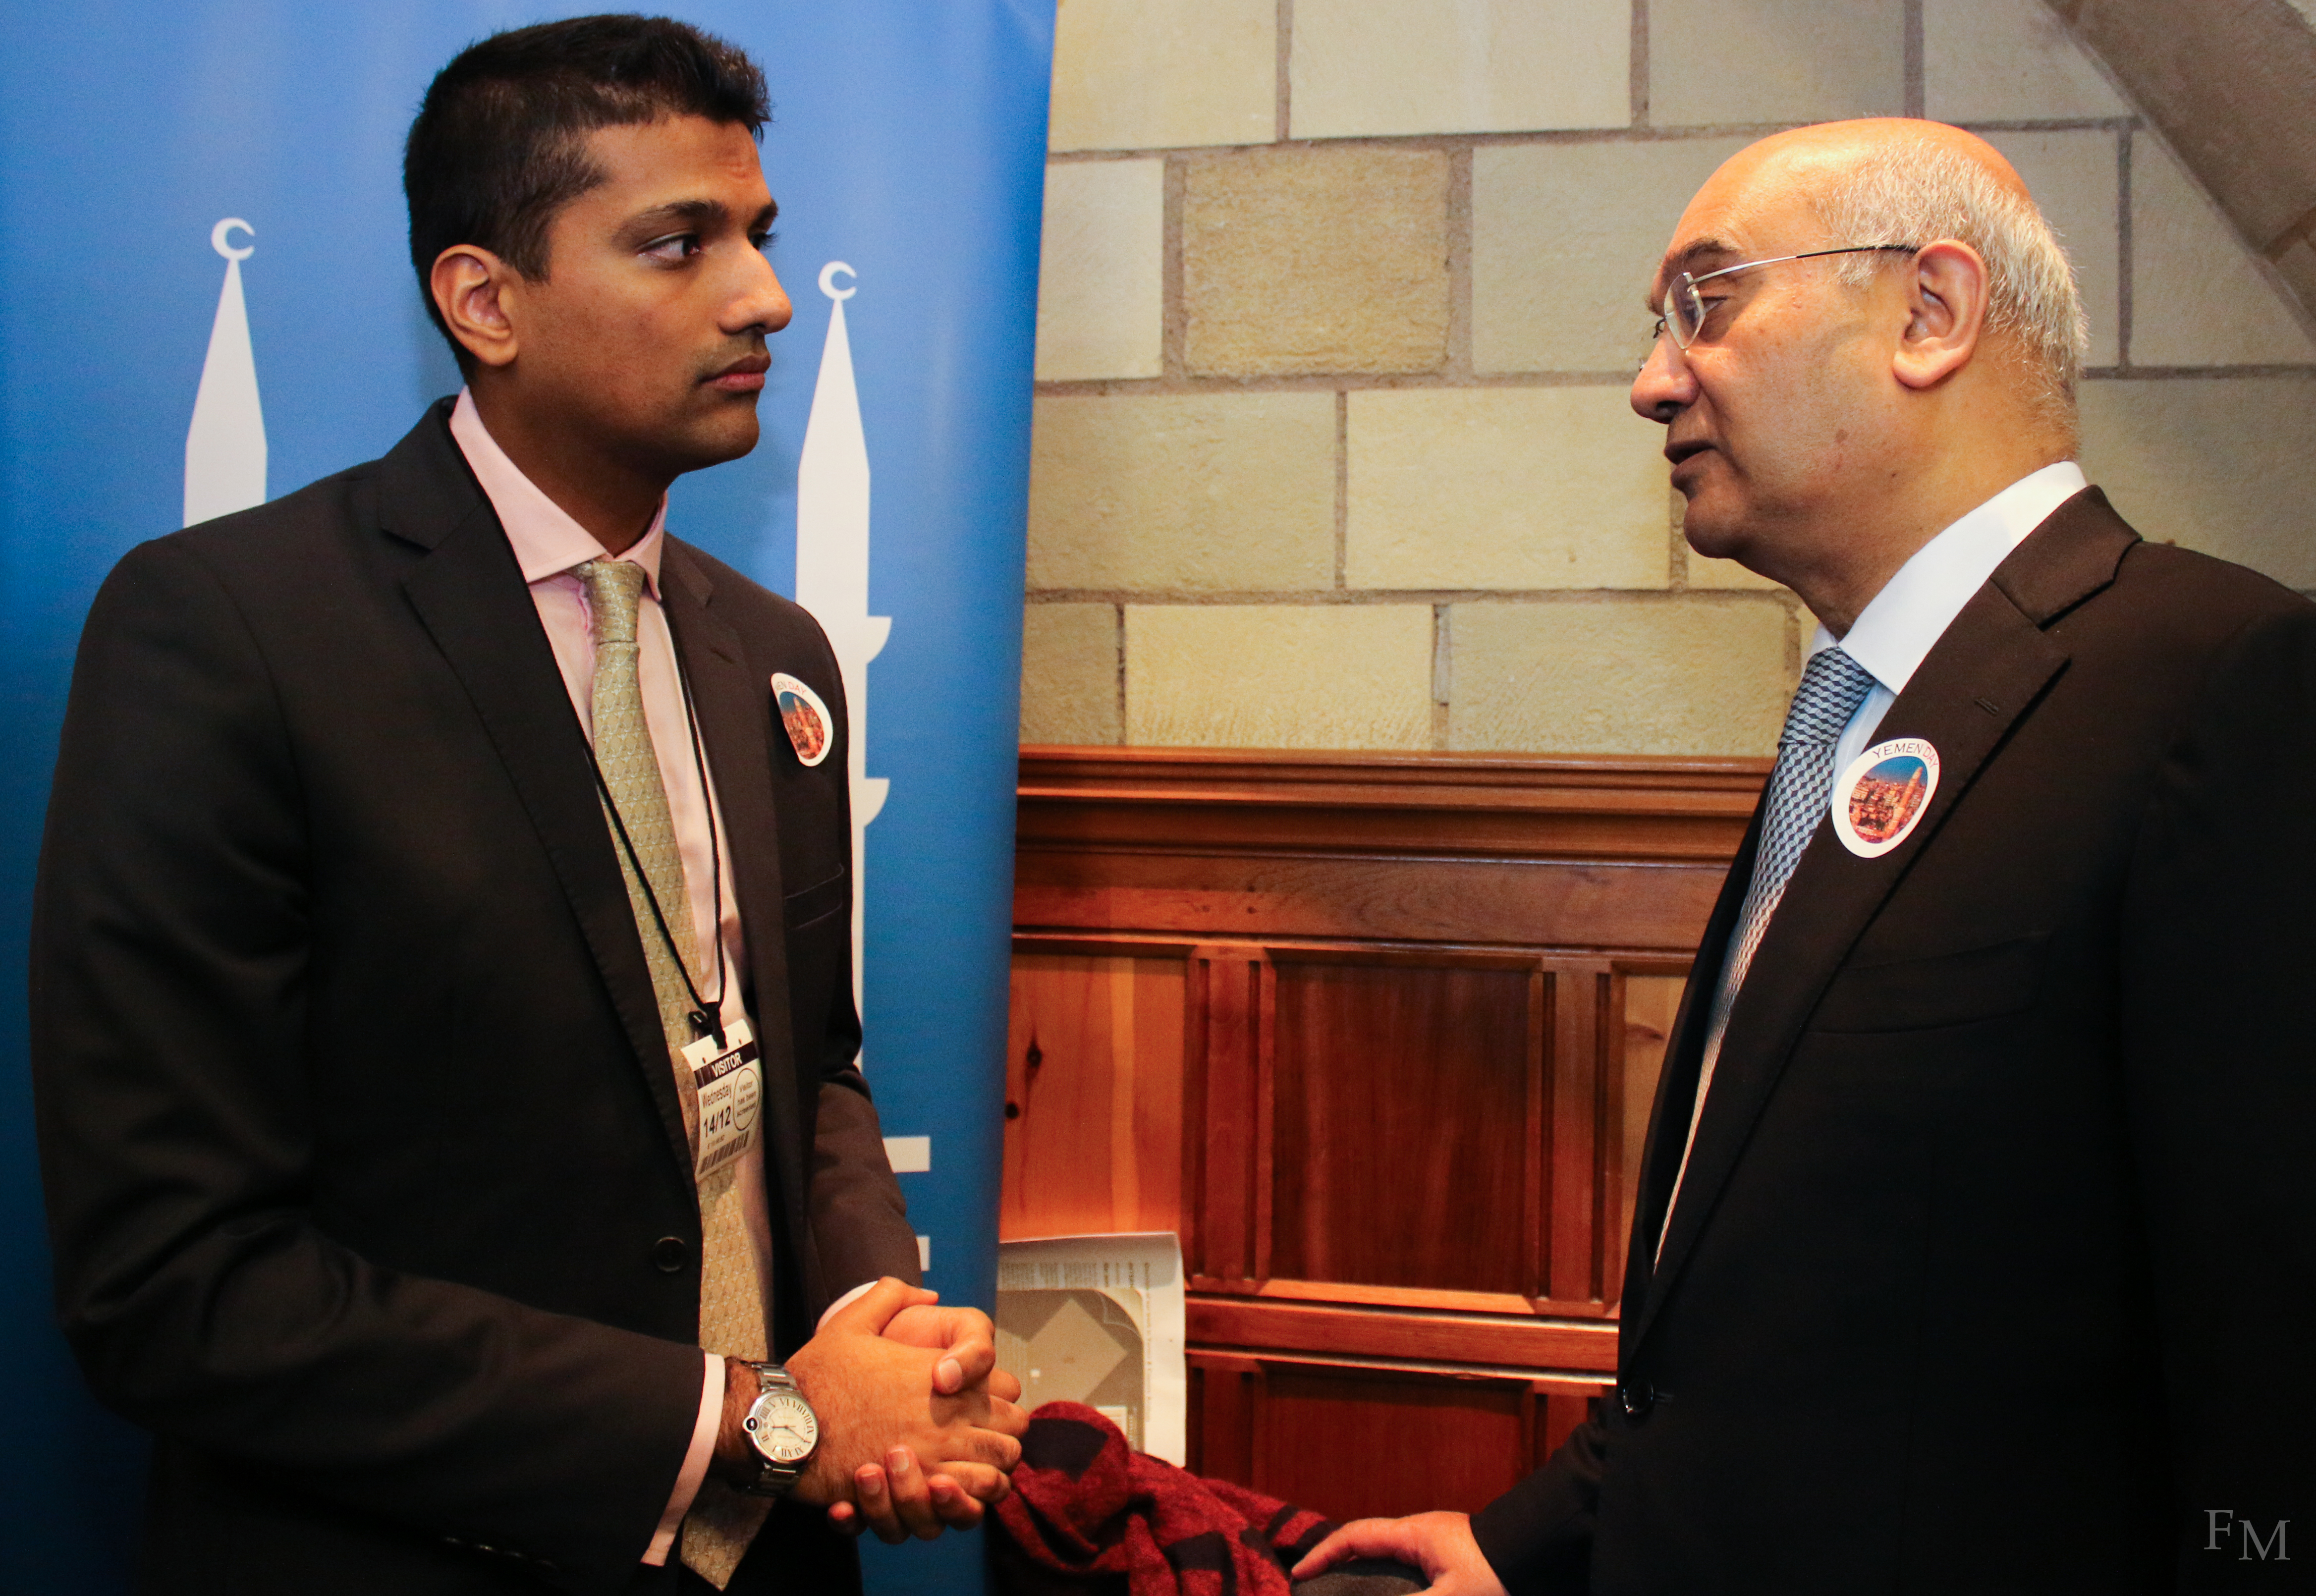 Yemen Day at the House of Commons